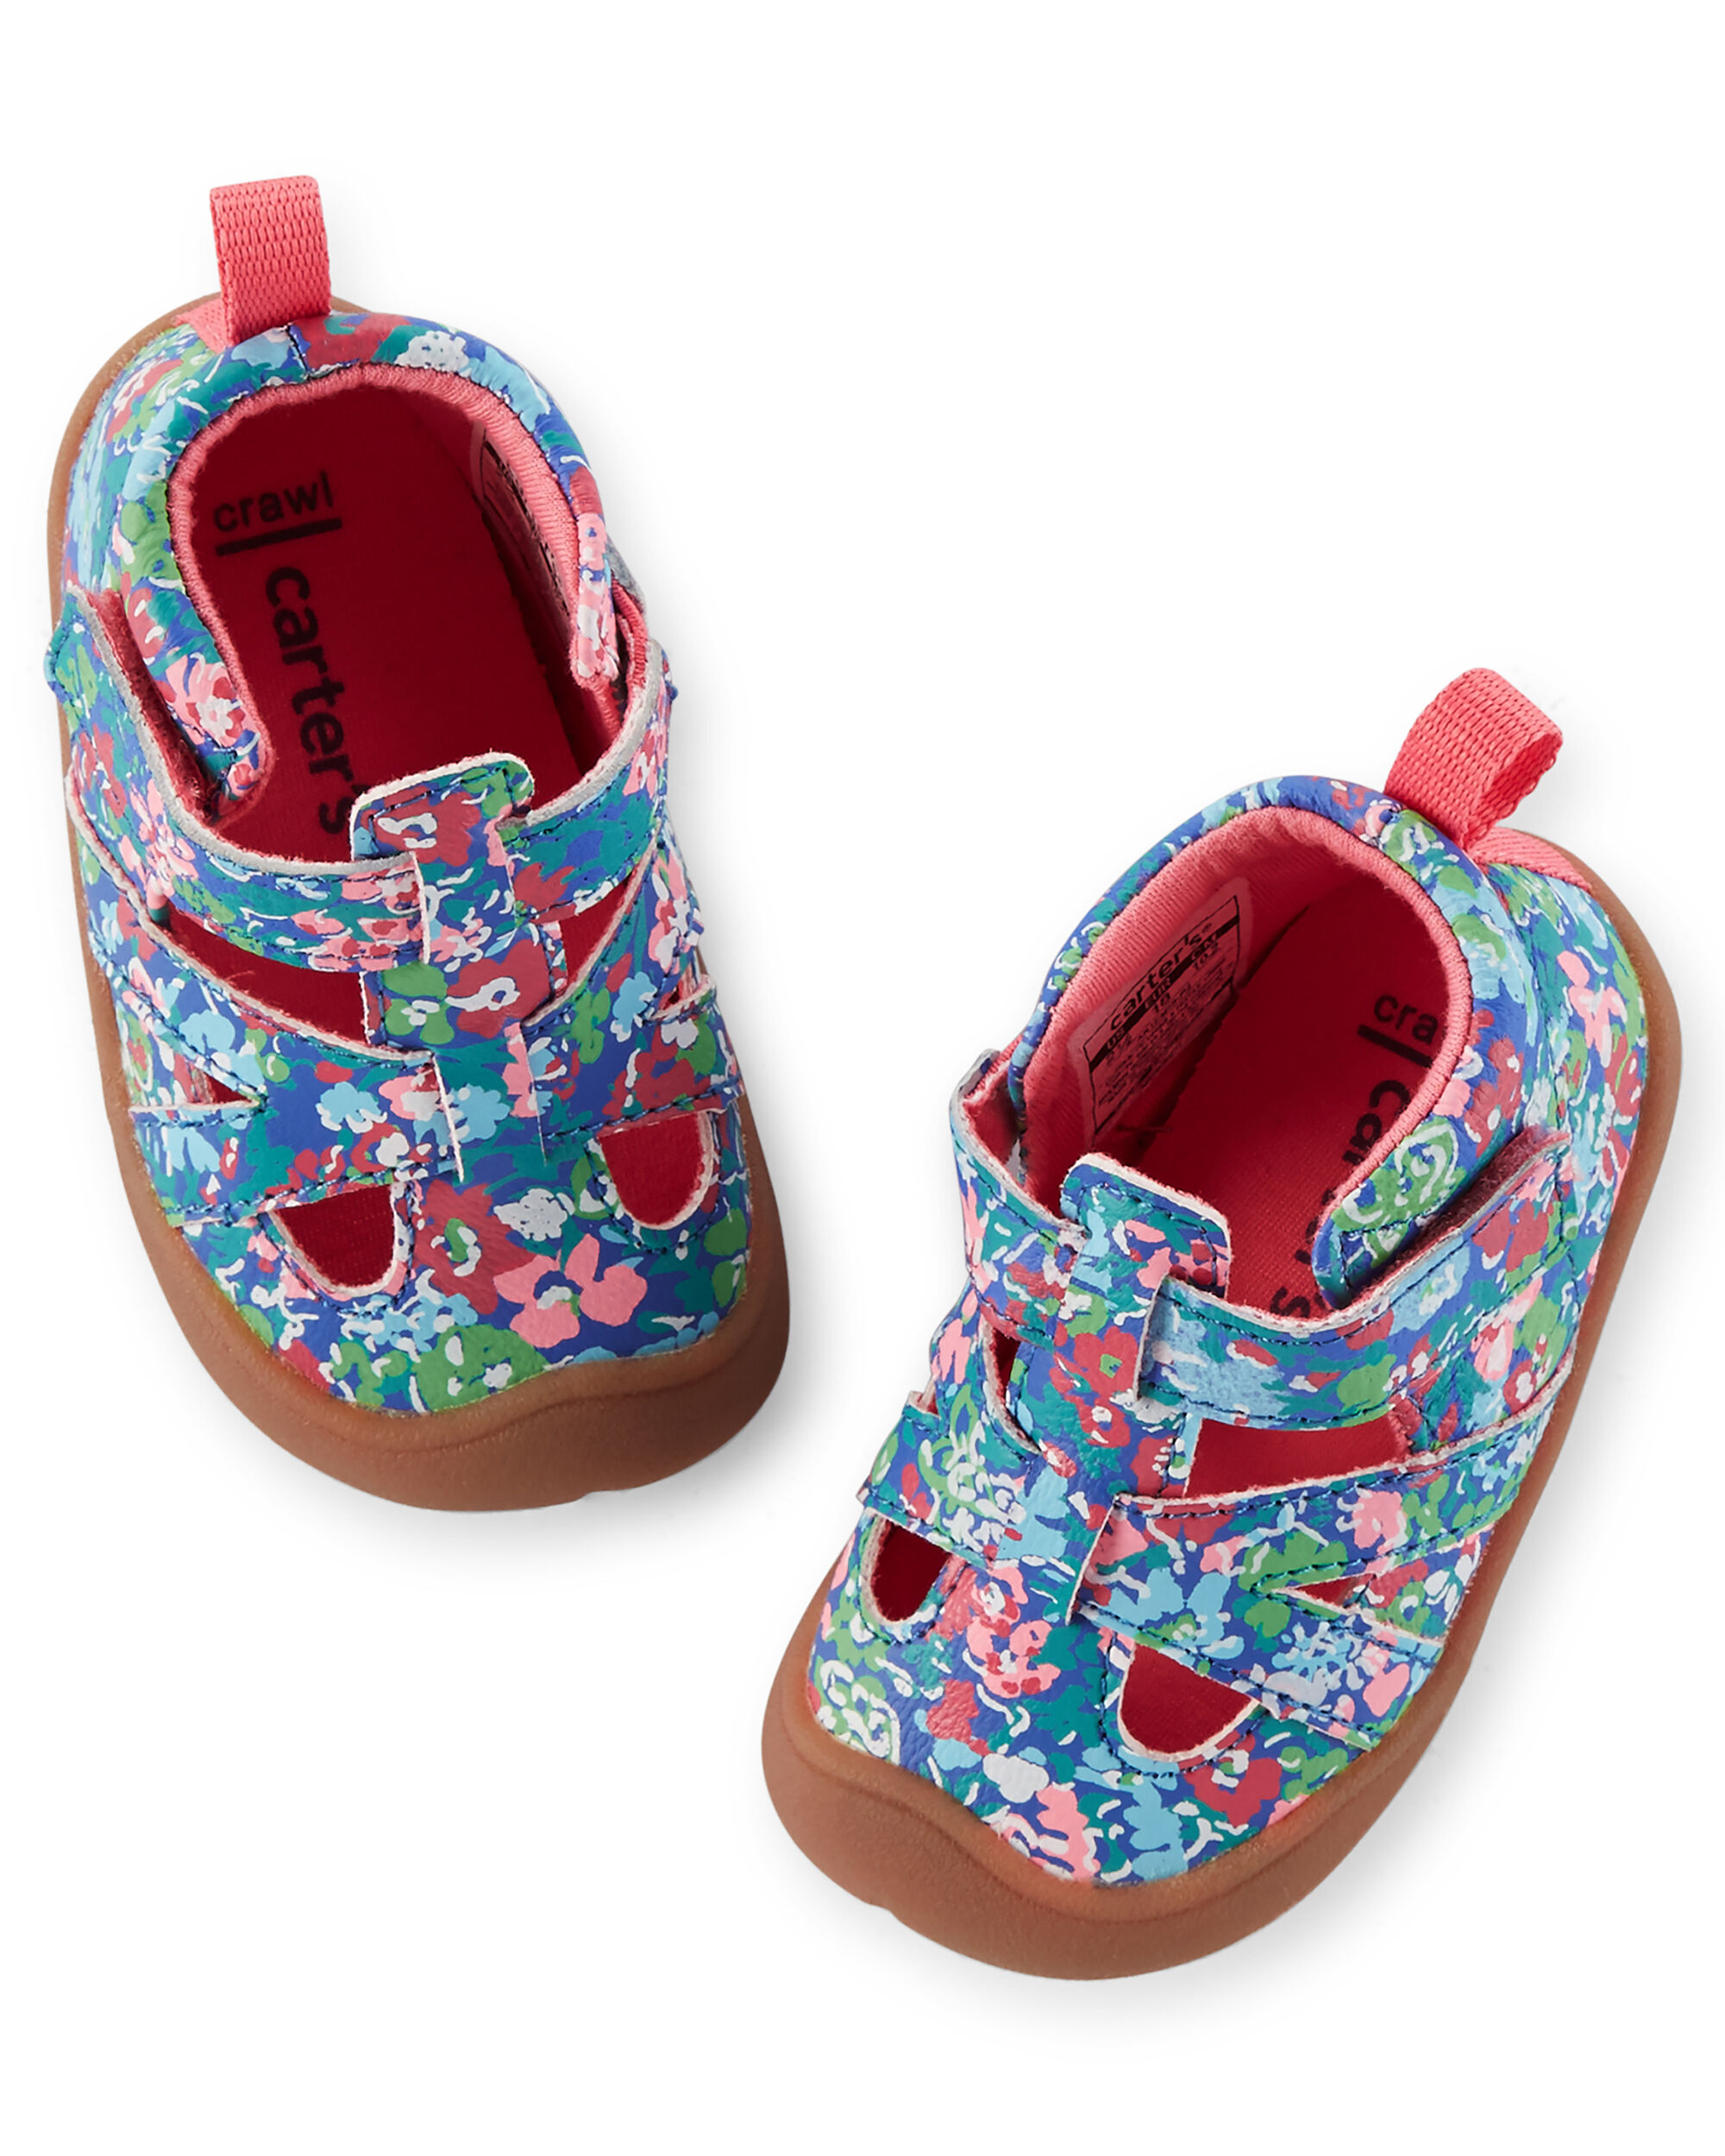 Carter's Every Step Stage 3 Shoe